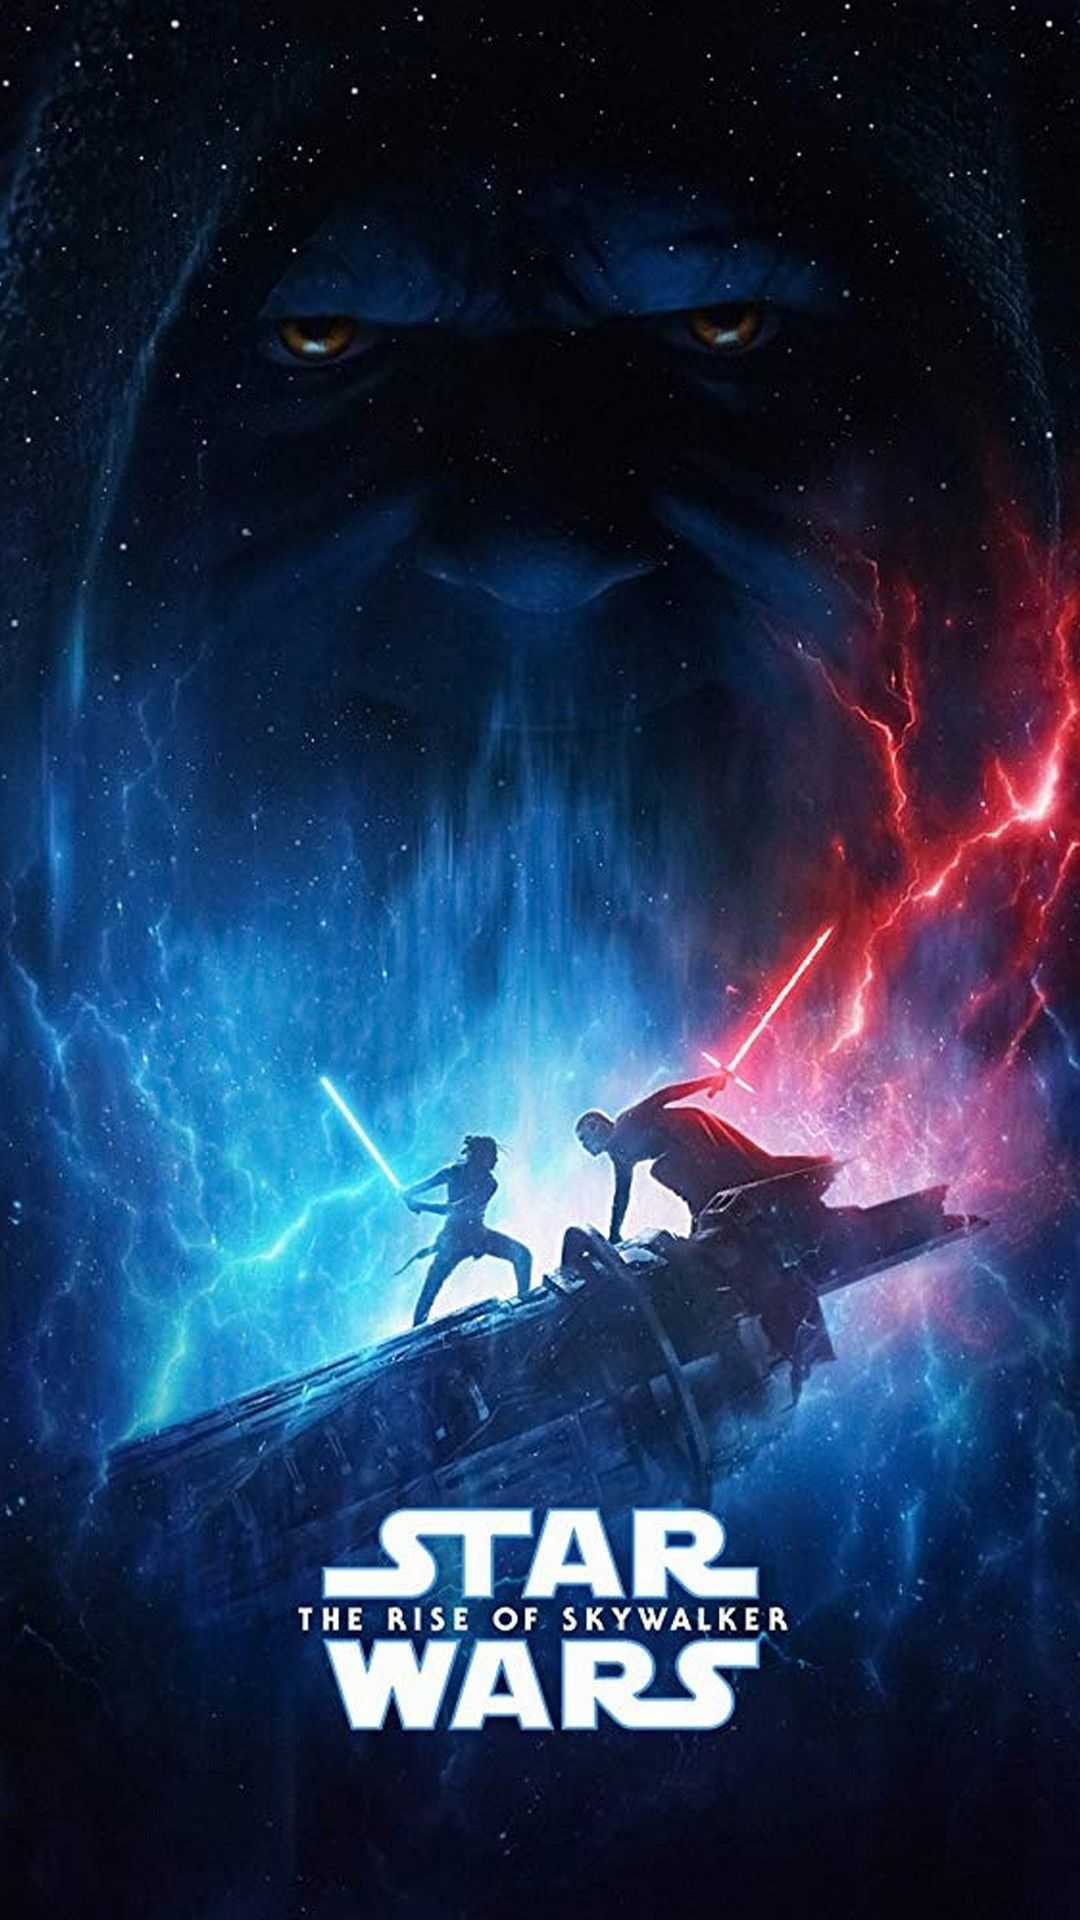 Star Wars The Rise Of Skywalker Iphone 7 Wallpaper Star Wars Wallpaper Iphone Star Wars Wallpaper Star Wars Watch